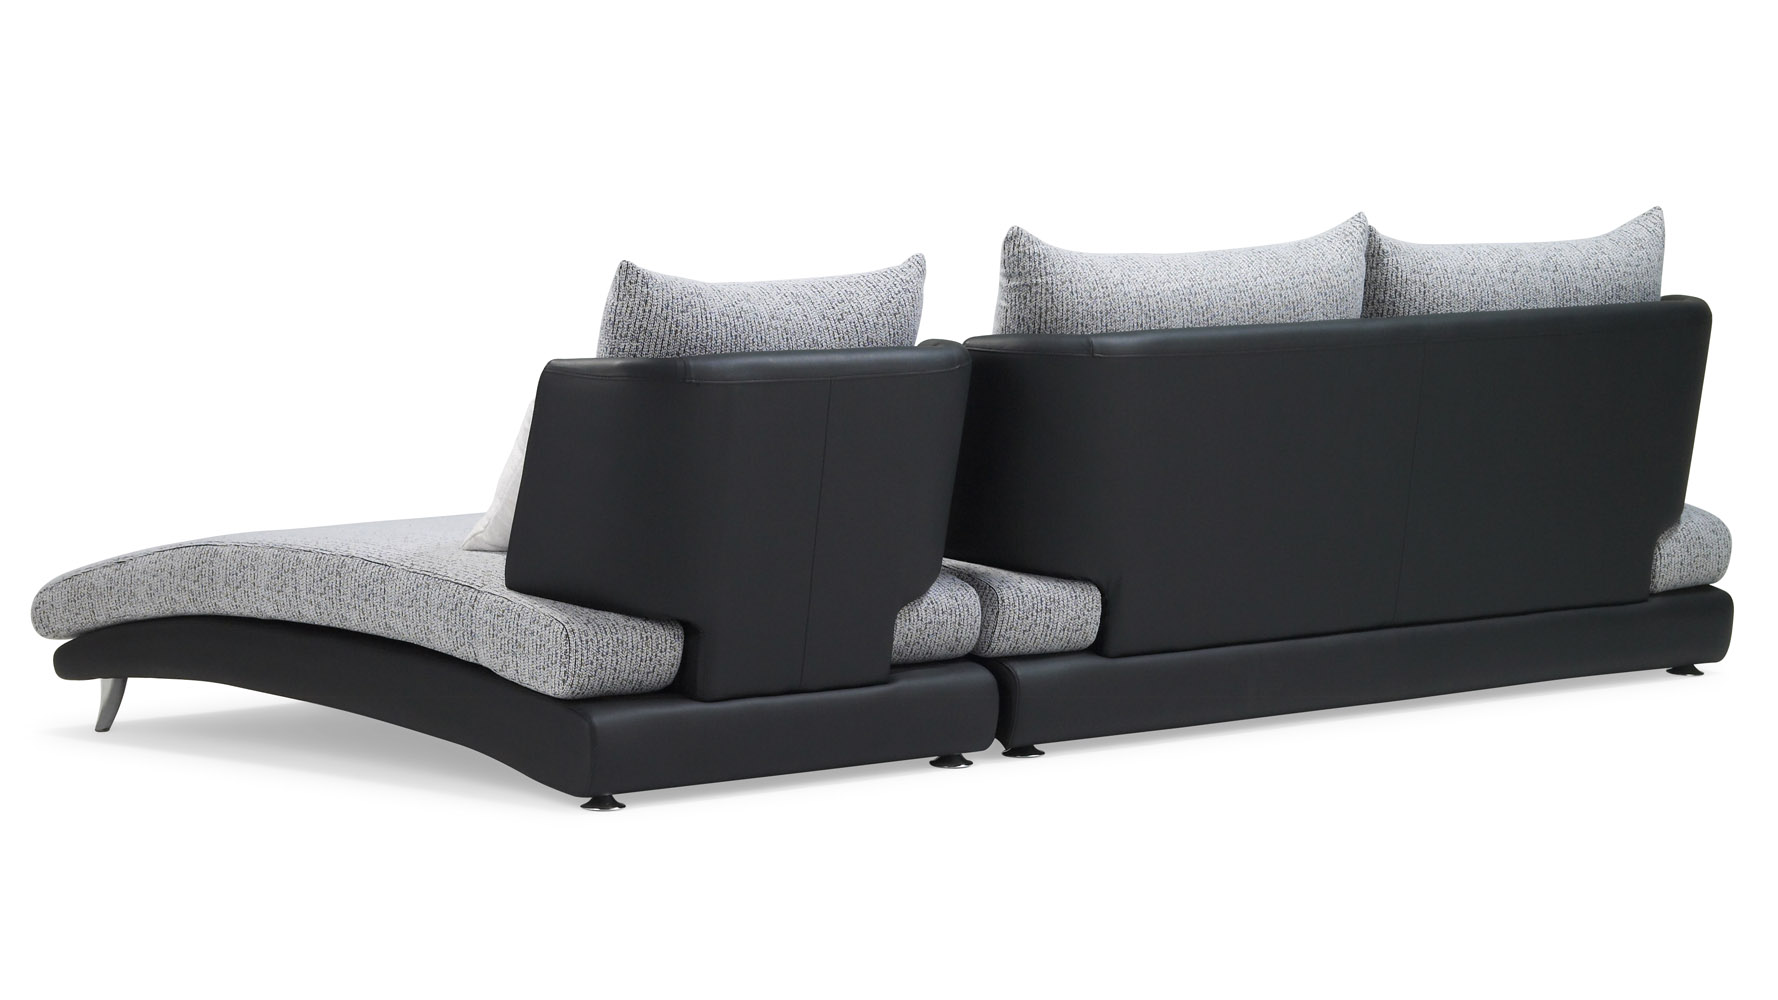 Two seater sofa with chaise cheap corner sofa beds uk for 2 seater chaise sofa bed